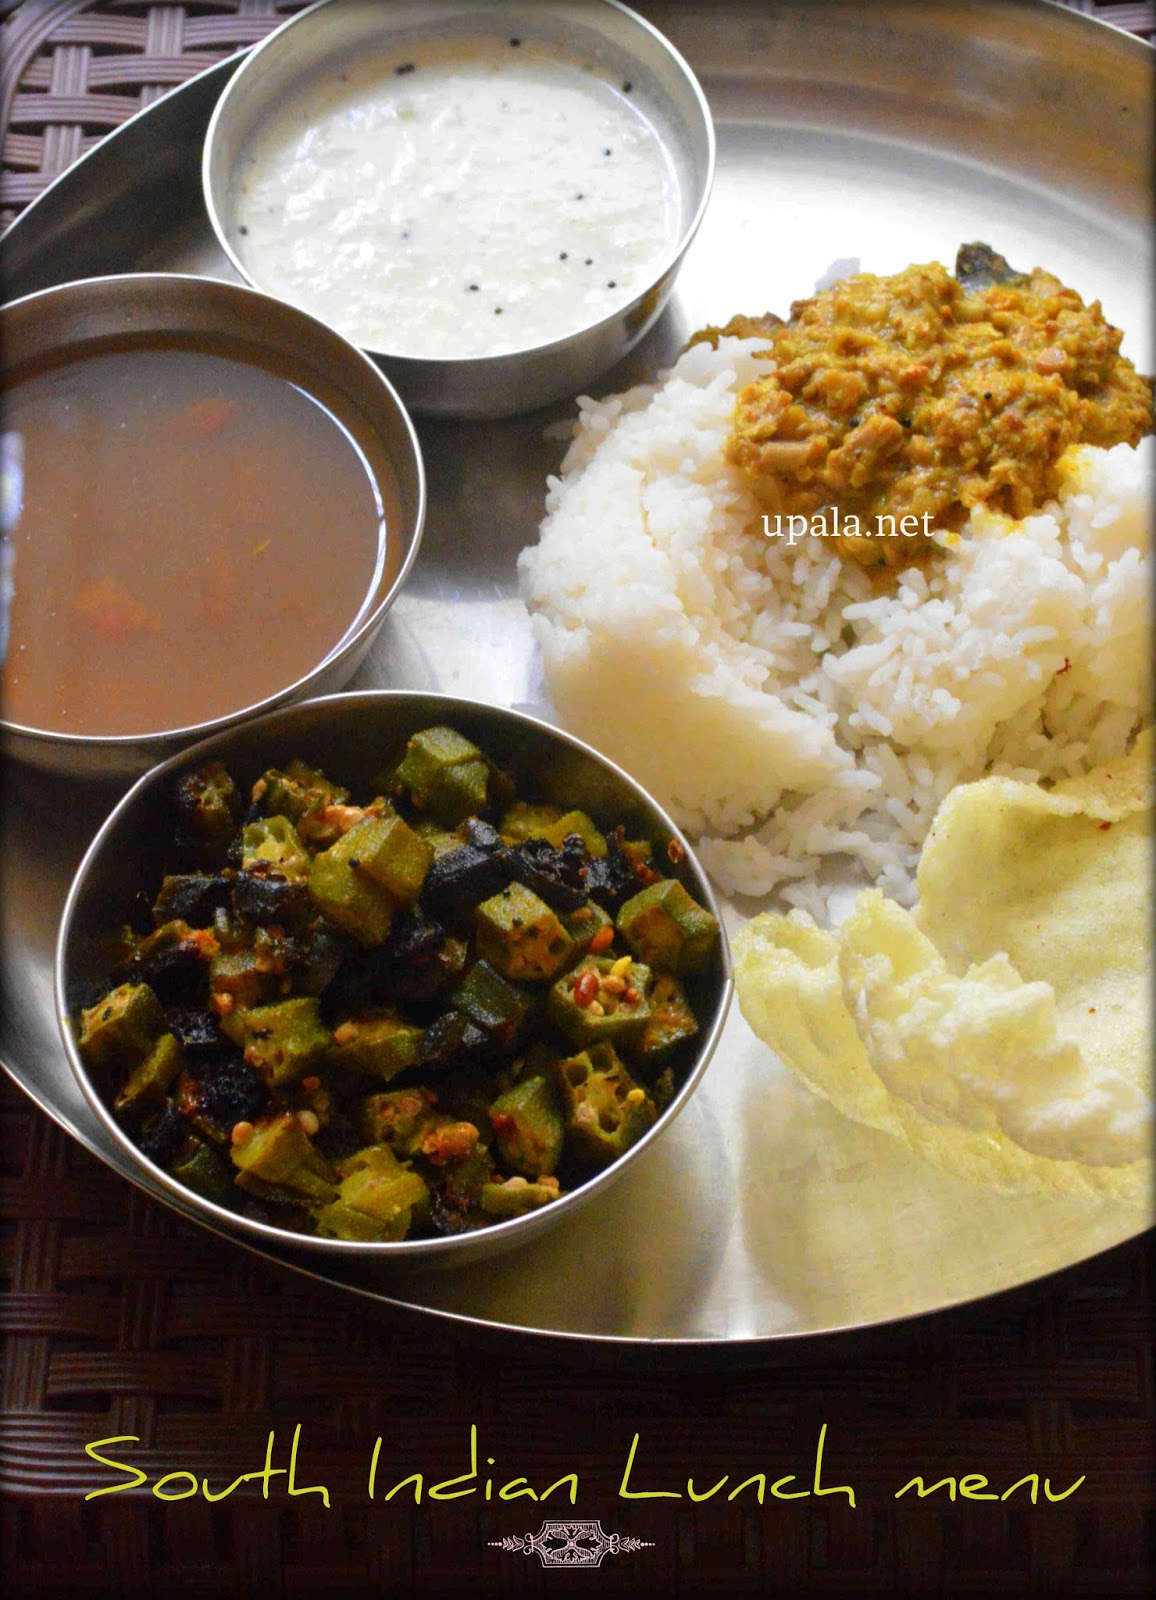 South Indian Lunch Menu 6